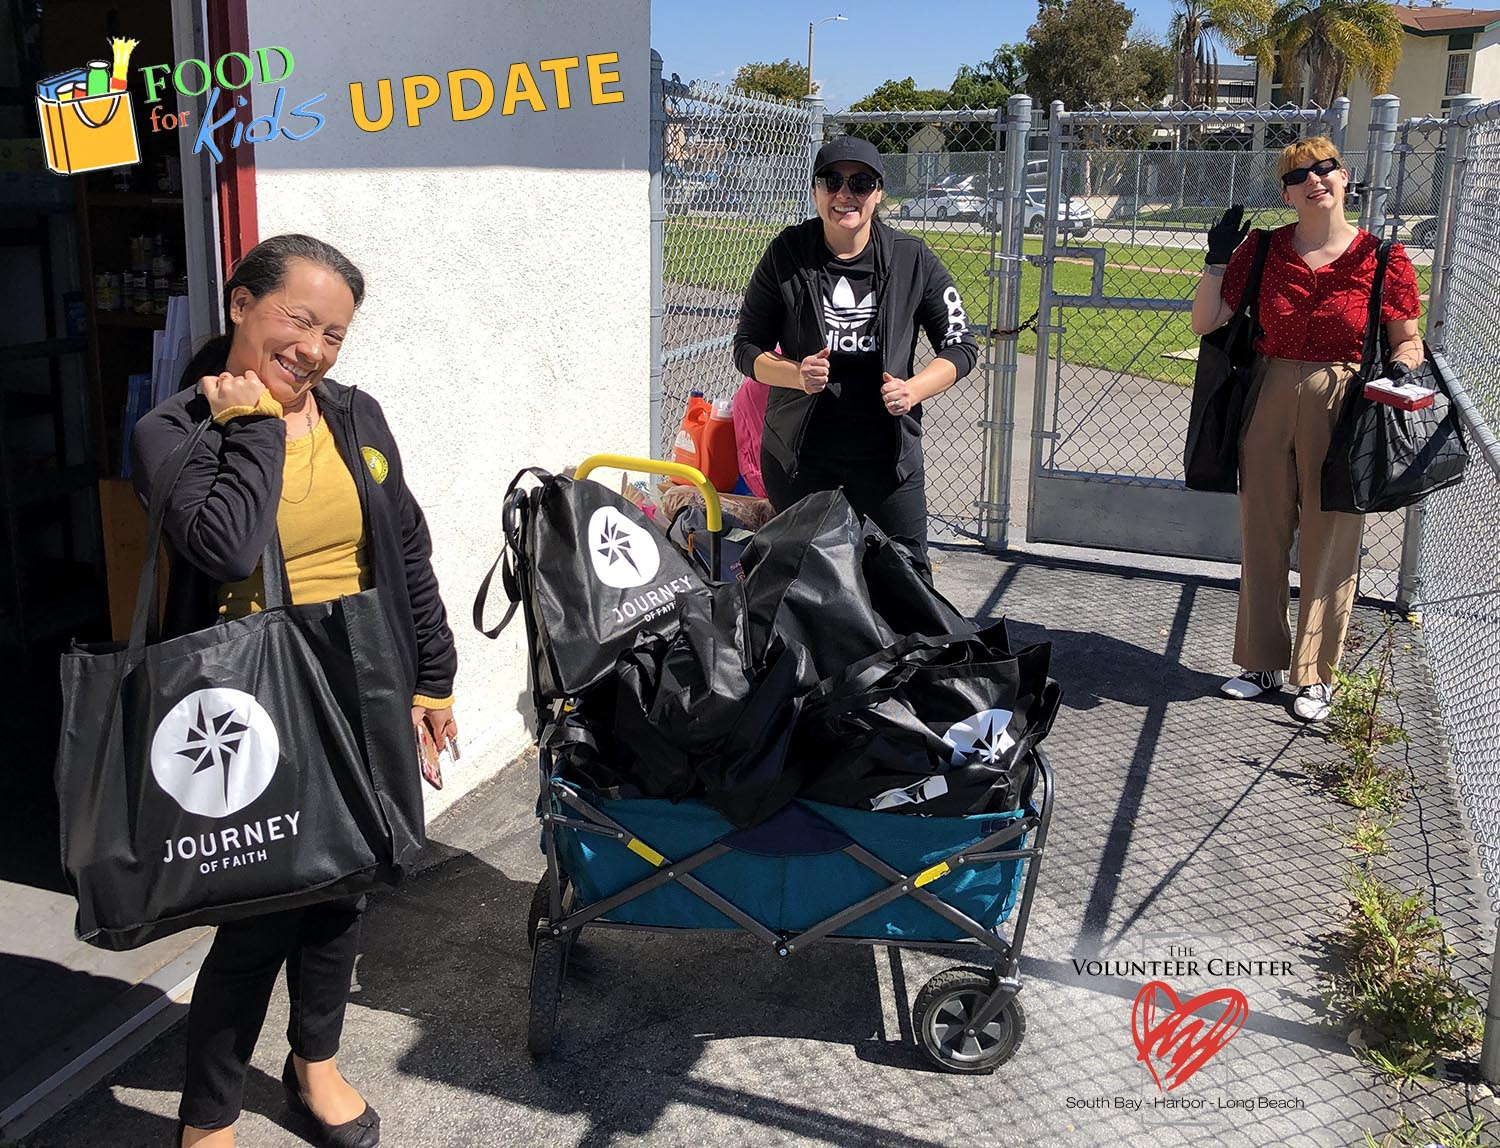 Special Food For Kids delivery at Torrance Unified School District